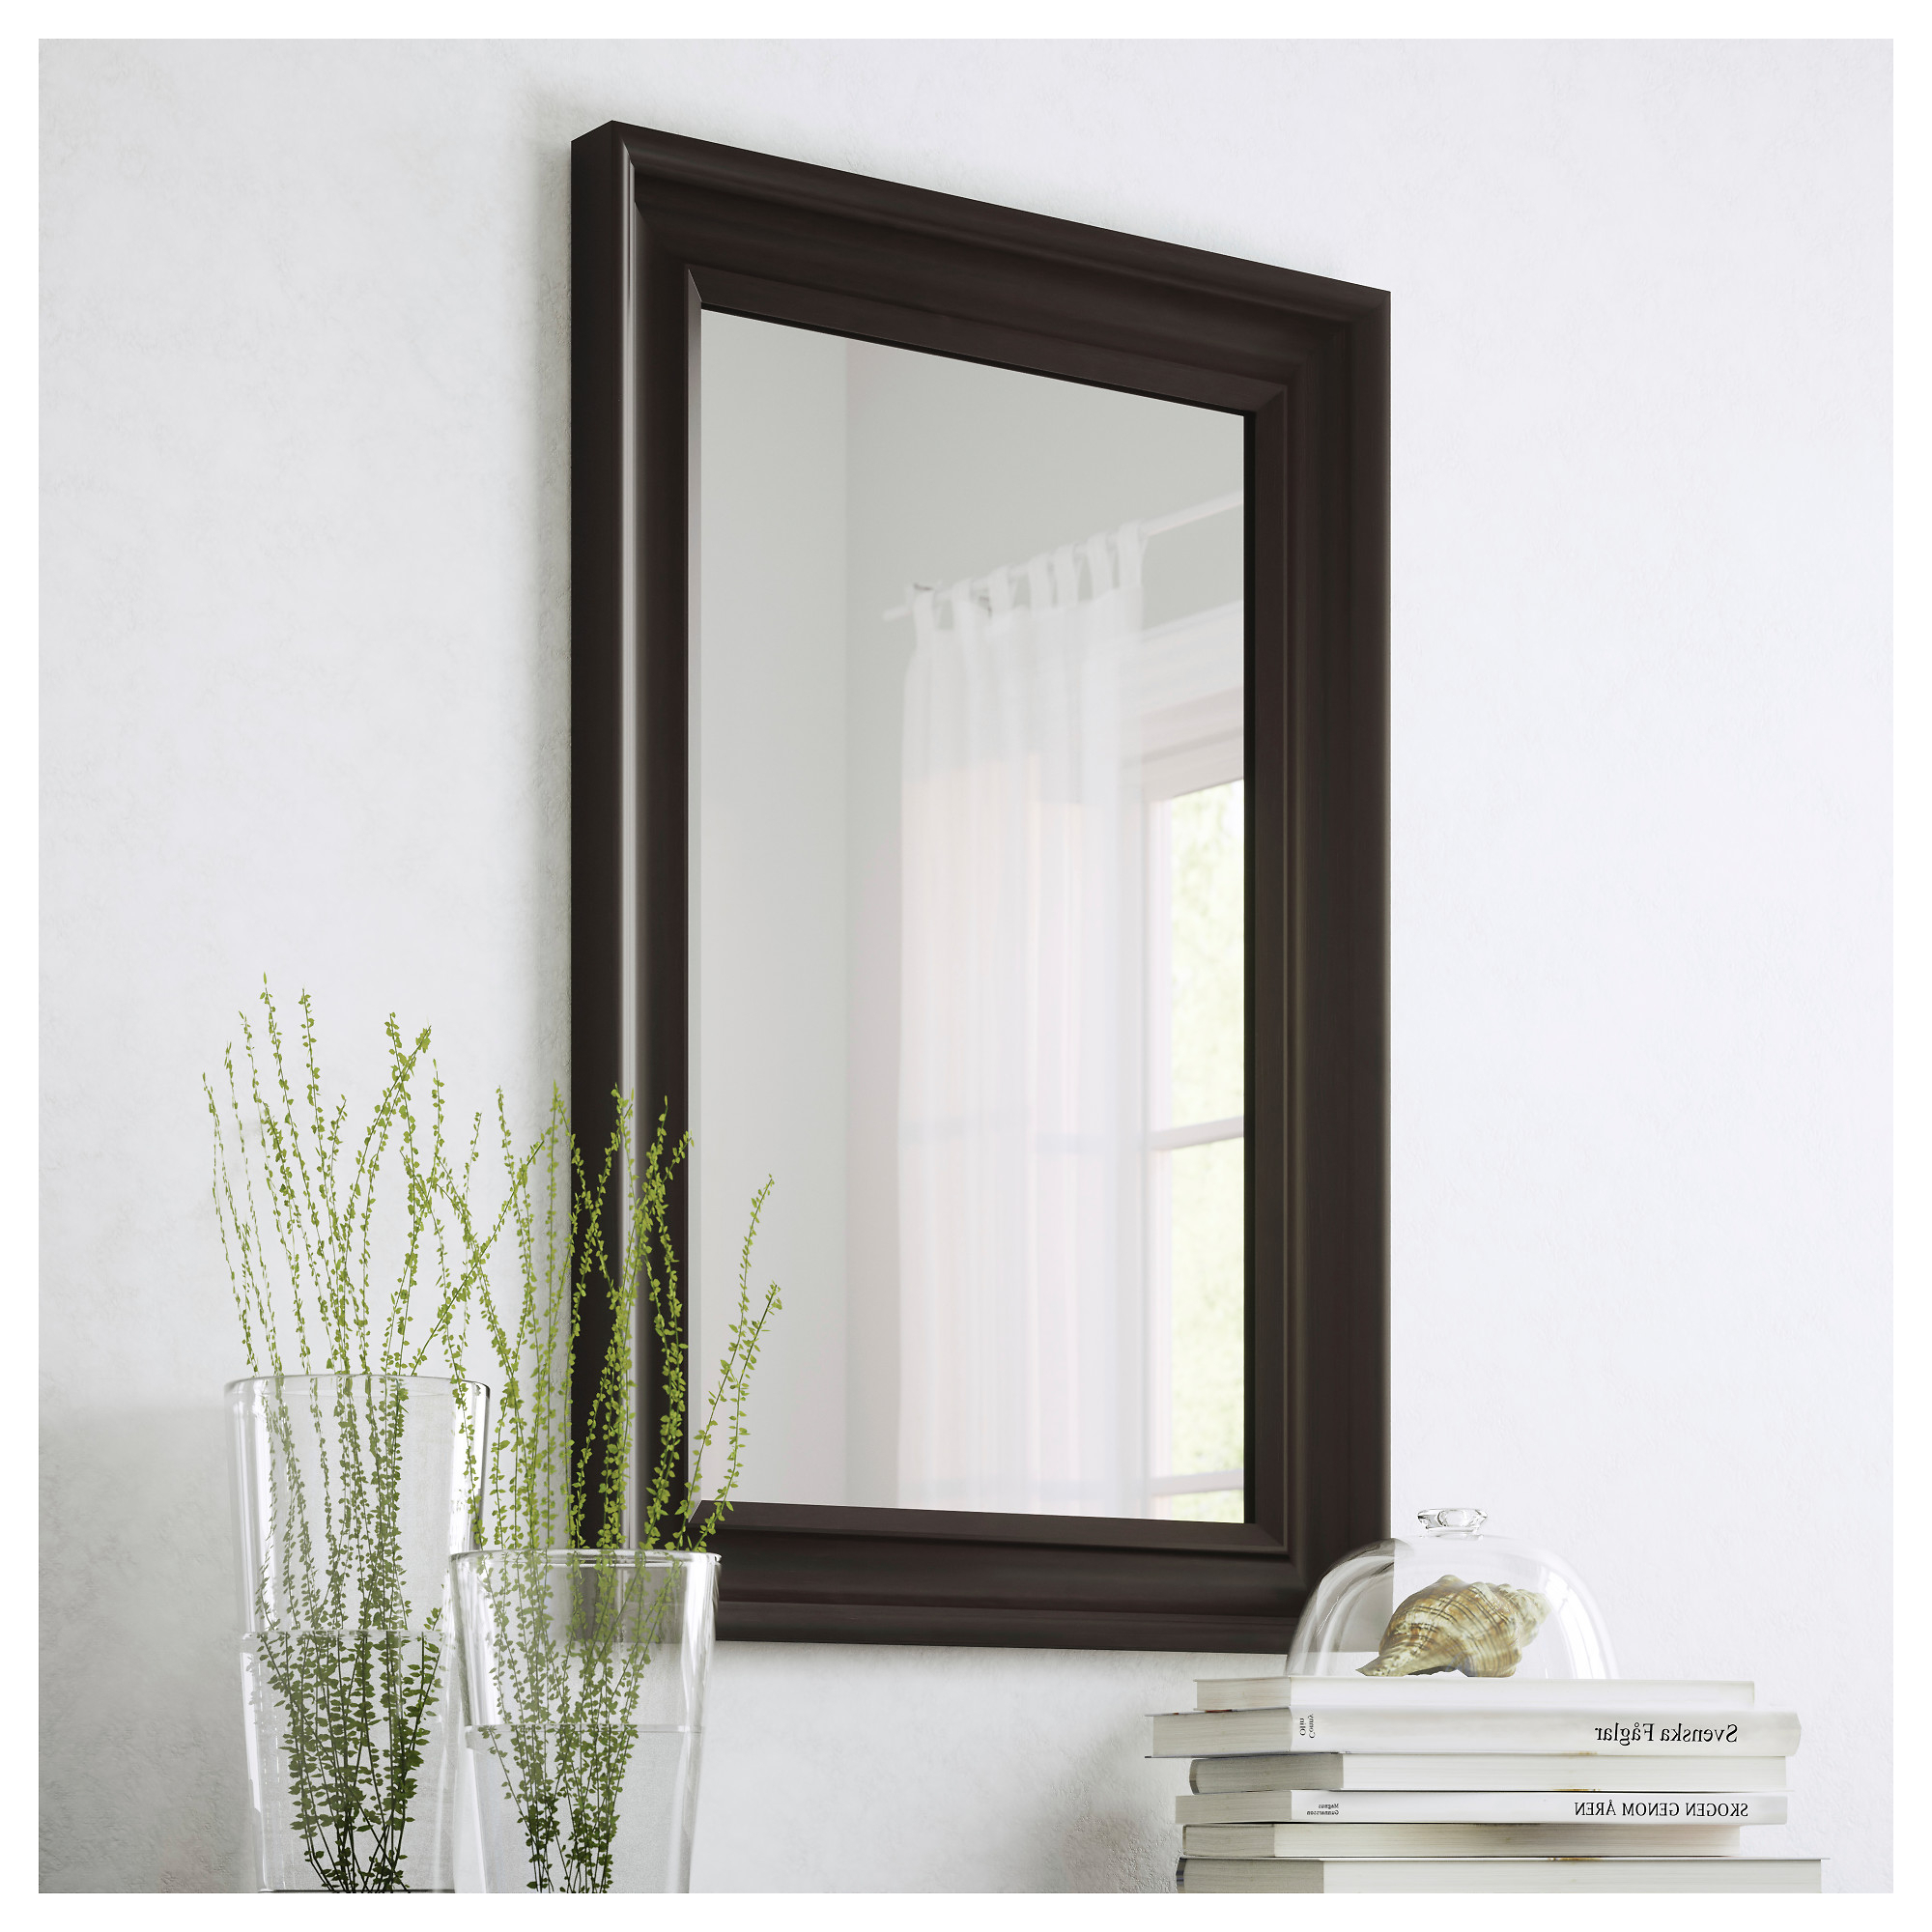 Ikea Wall Mirrors For Most Recent Ikea Lithuania – Shop For Furniture, Lighting, Home Accessories & More (View 9 of 20)